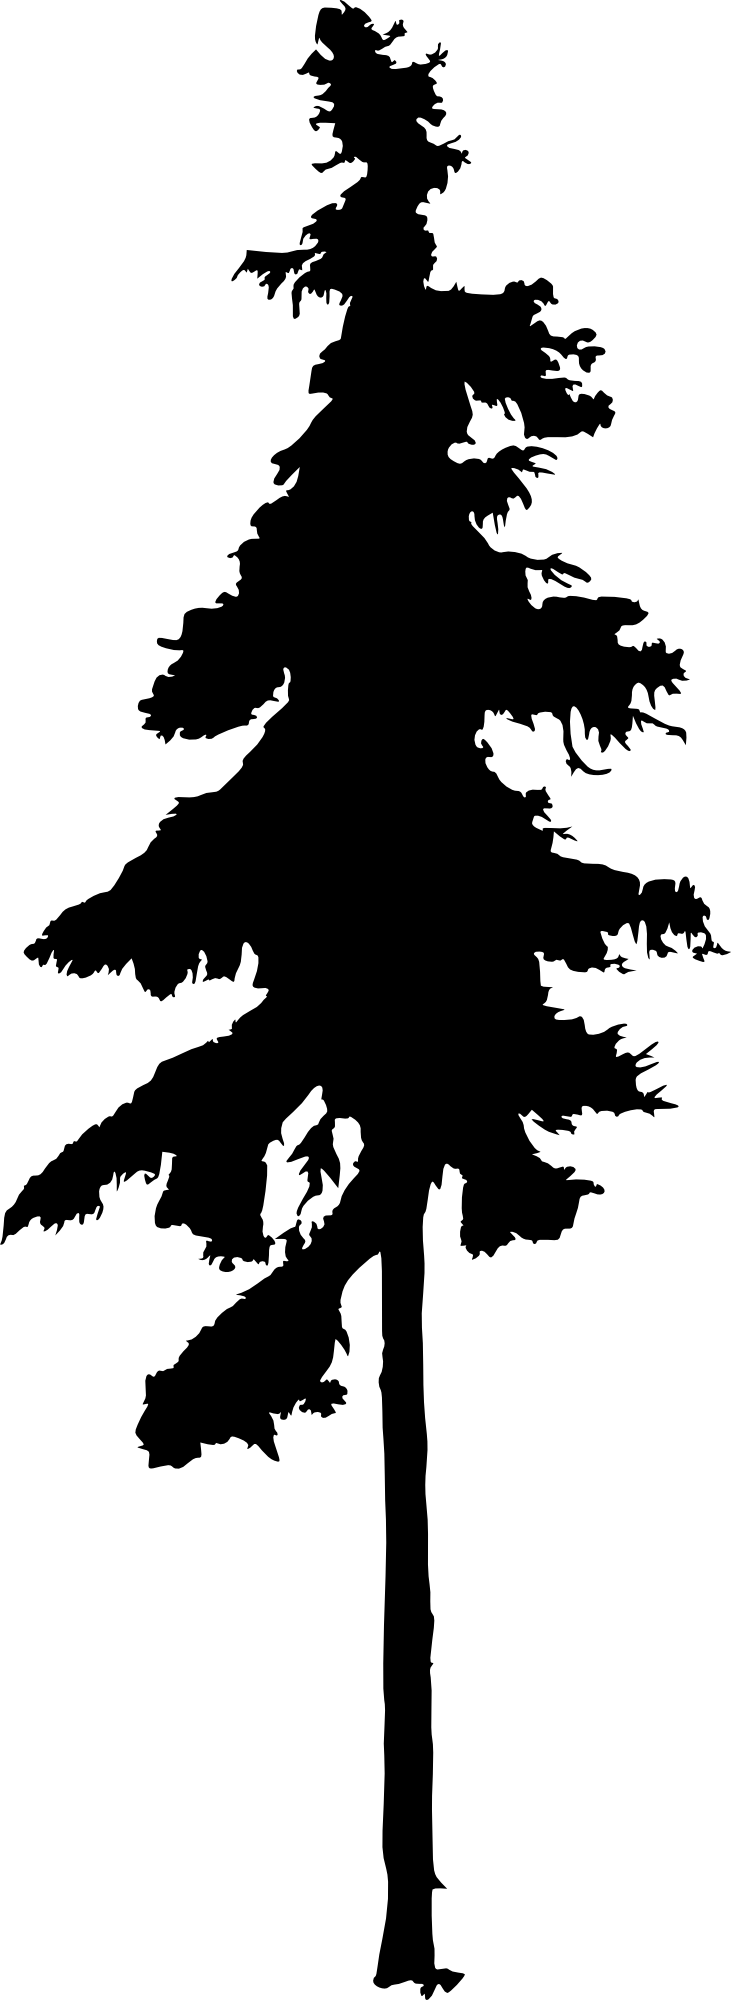 White Pine Tree Drawing